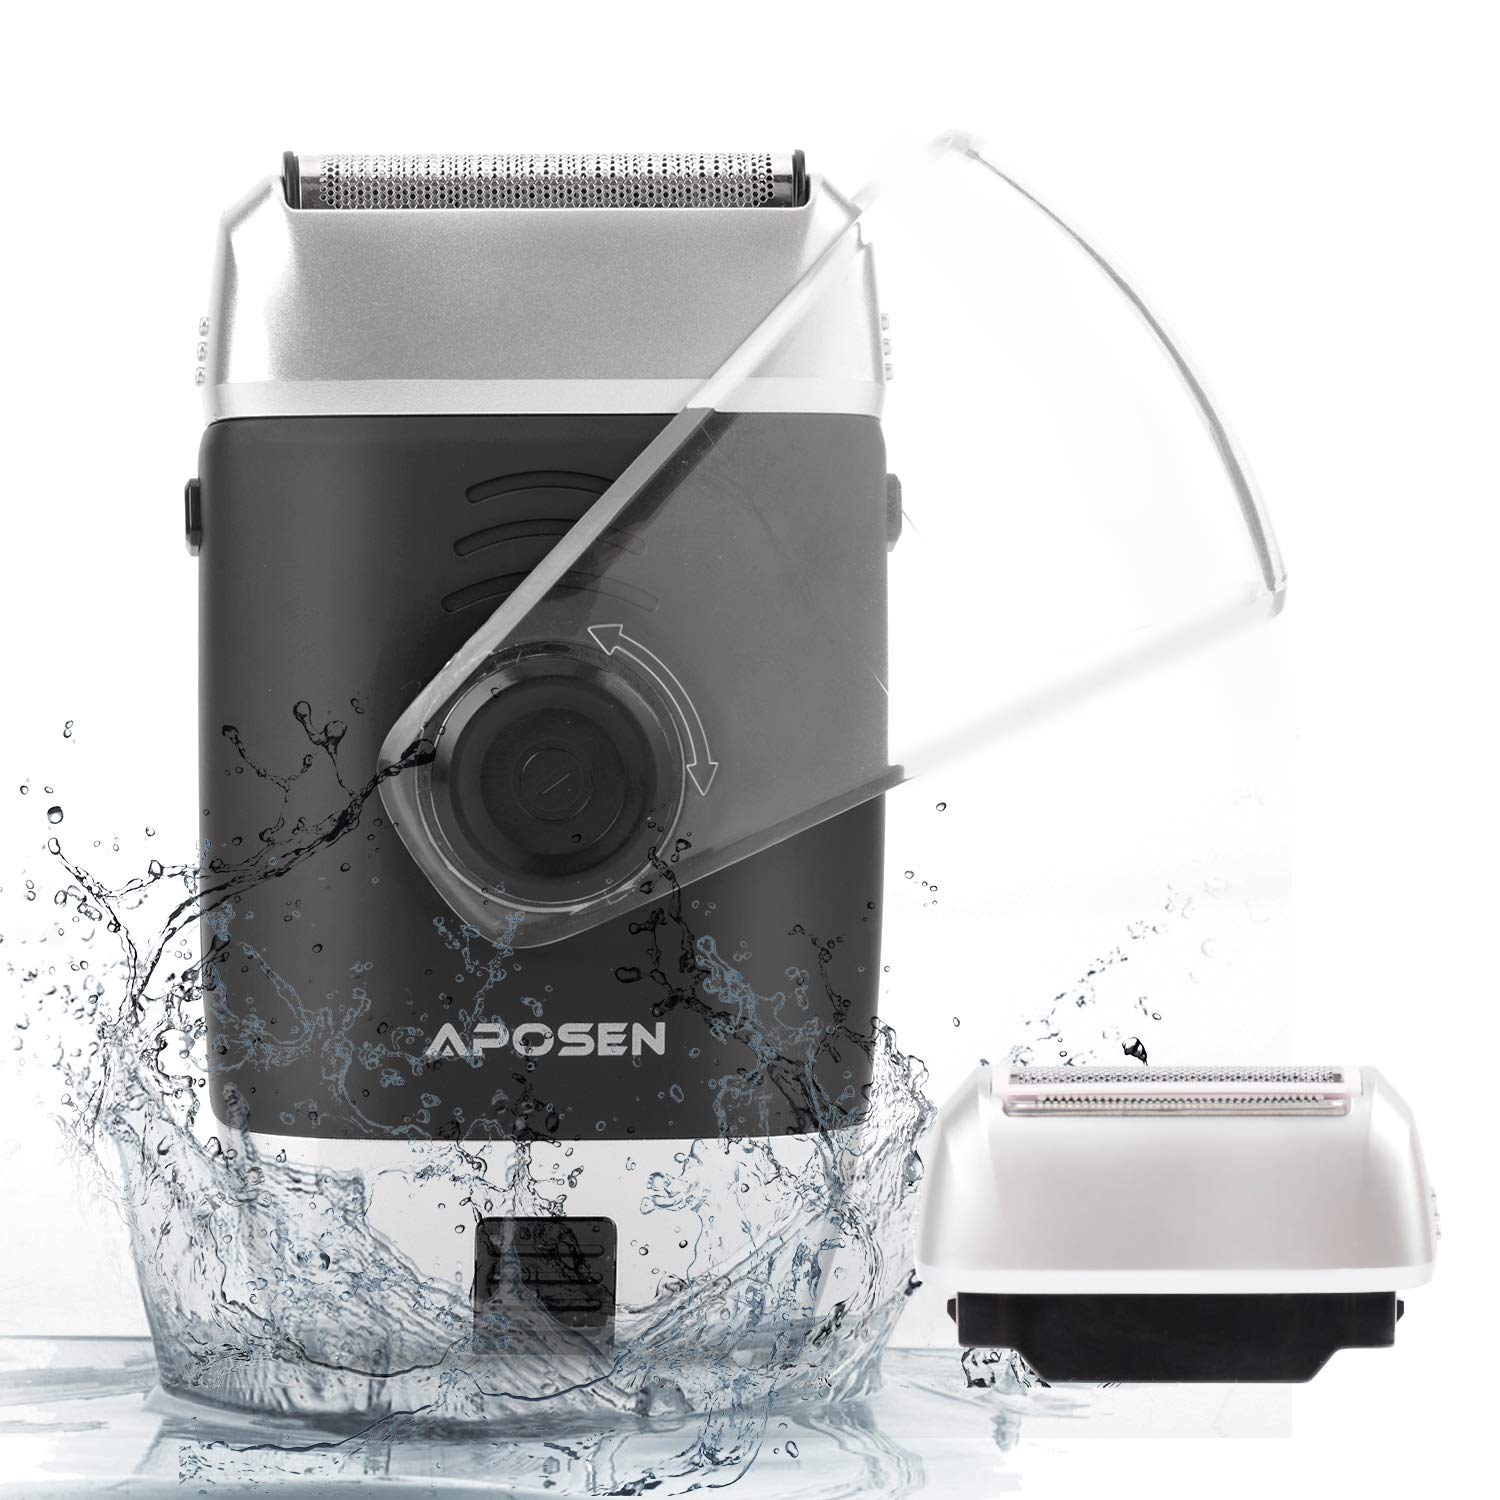 APOSEN Electric Razor for Men, Cordless Electric Shaver with Pop-up Trimmer, USB Rechargeable, Wet & Dry Foil Shaver, T12 Black